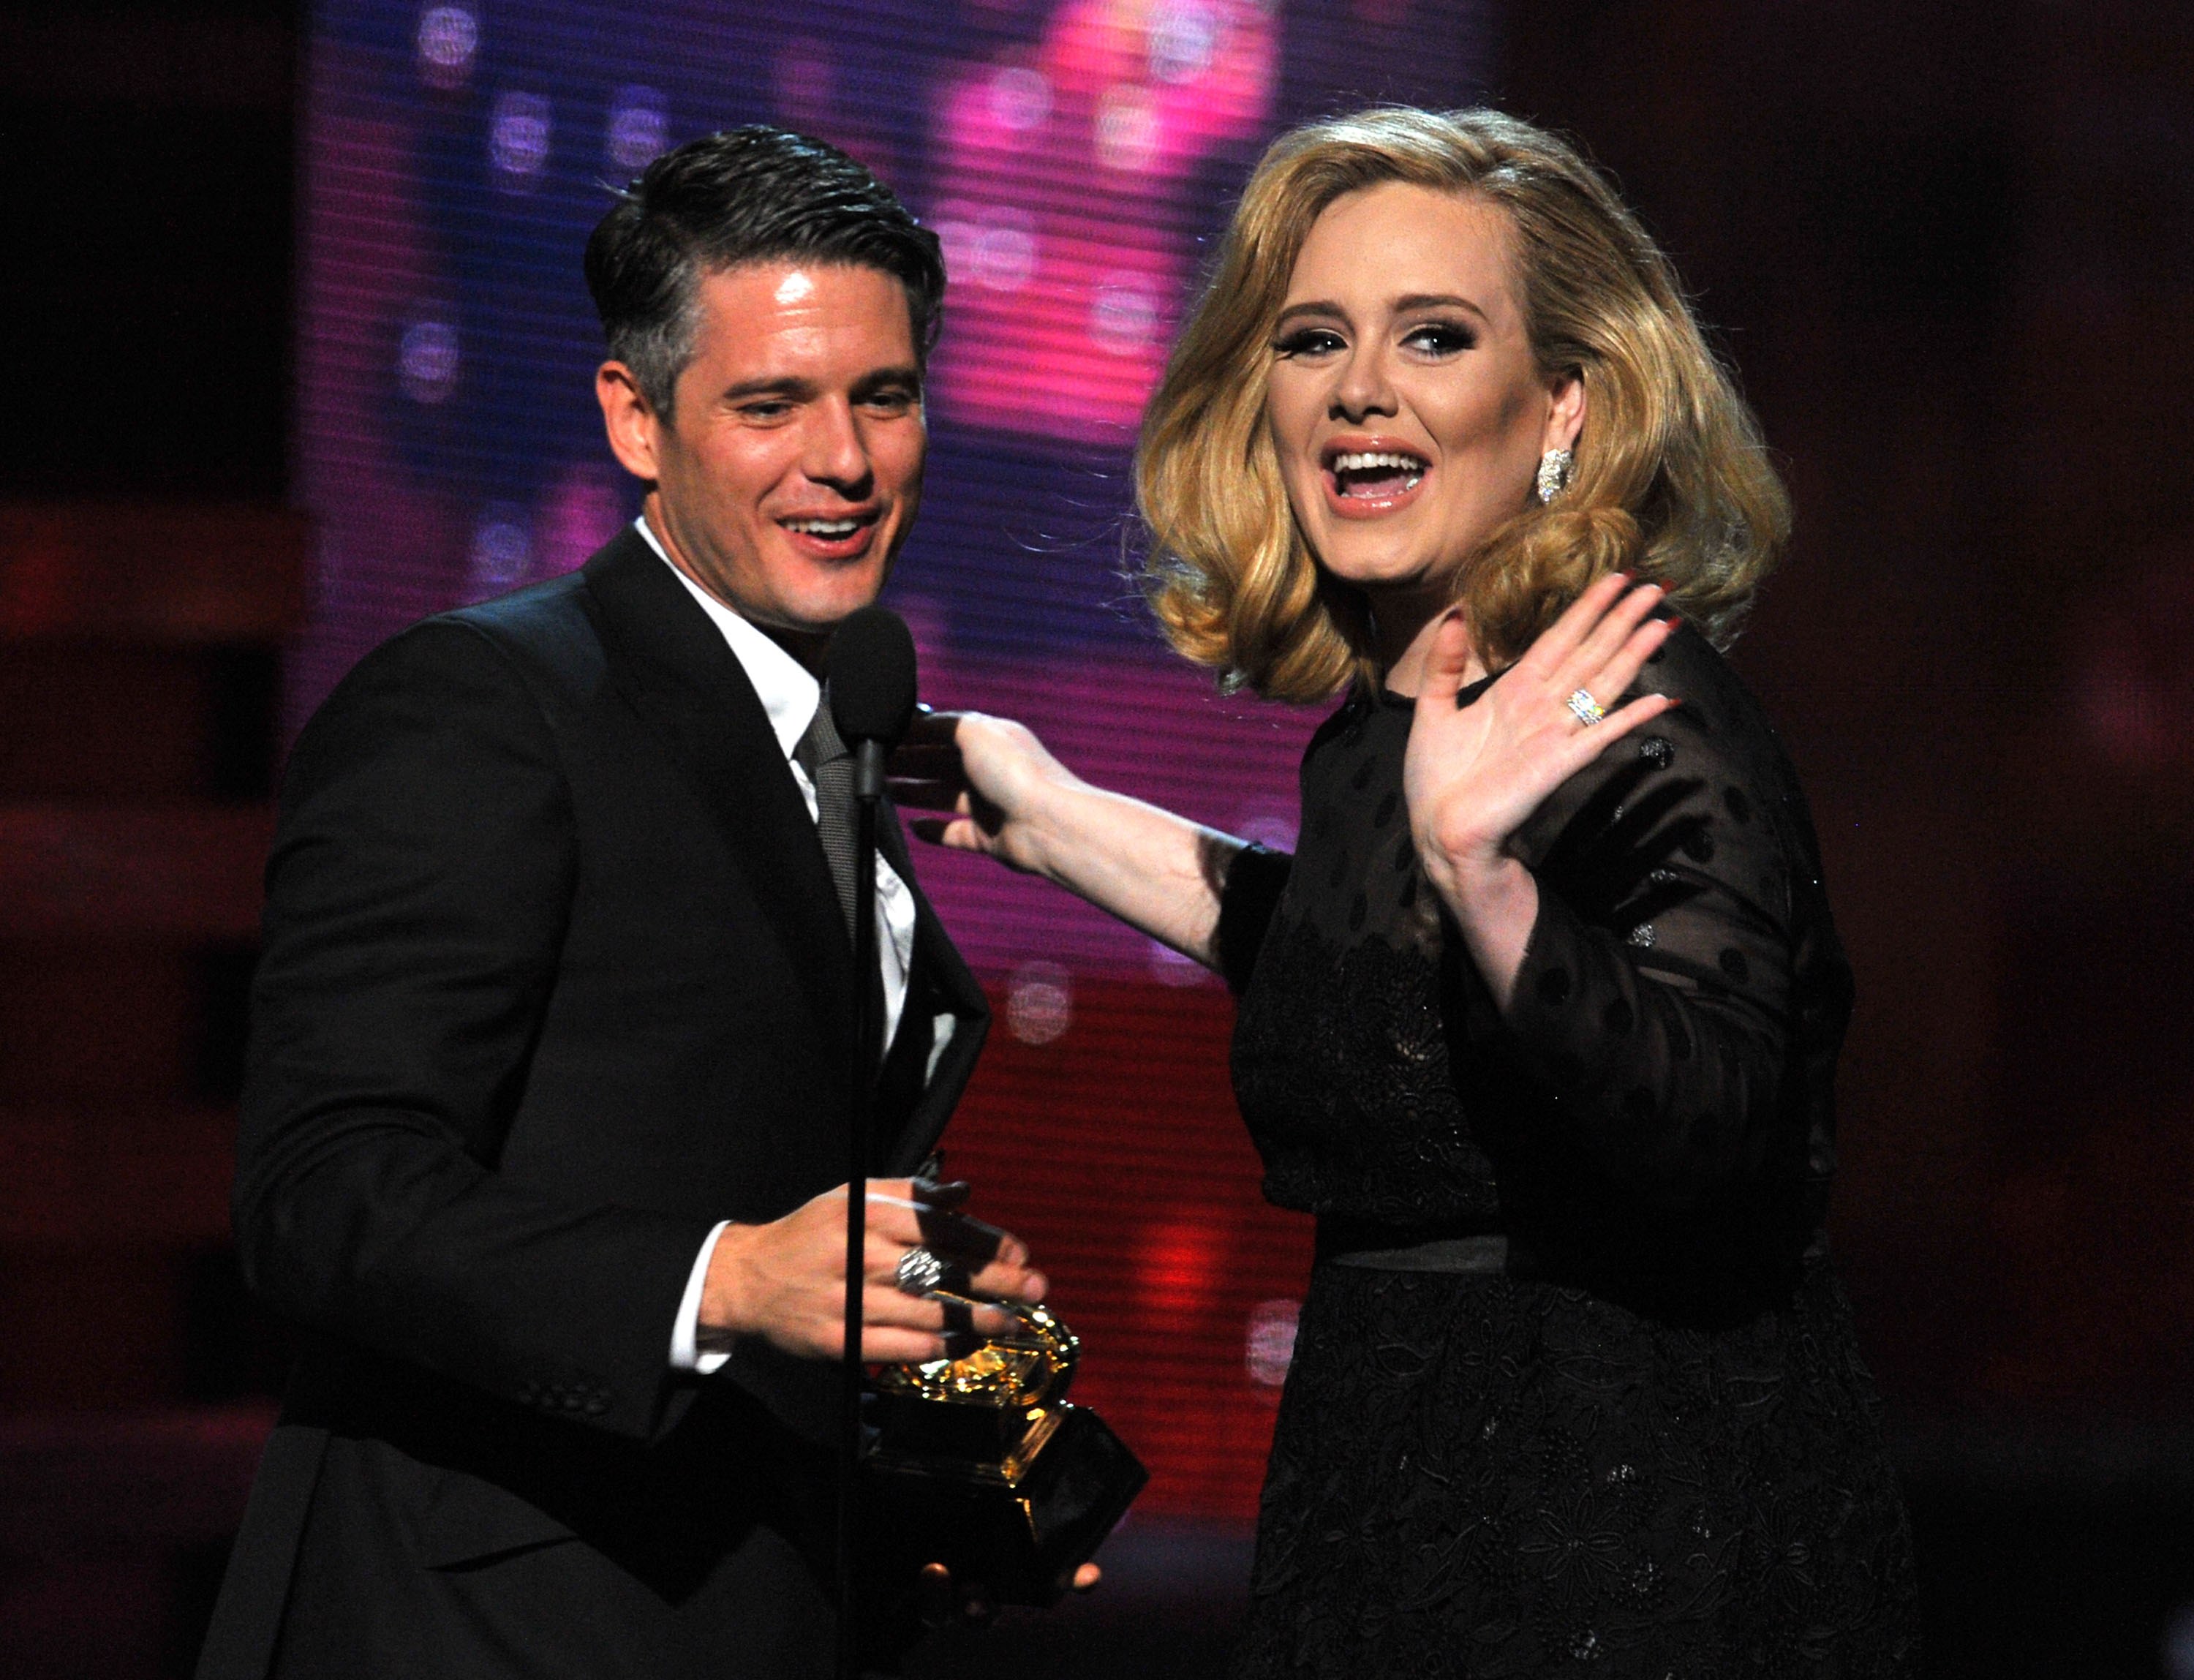 Adele gave a wave to her fans.